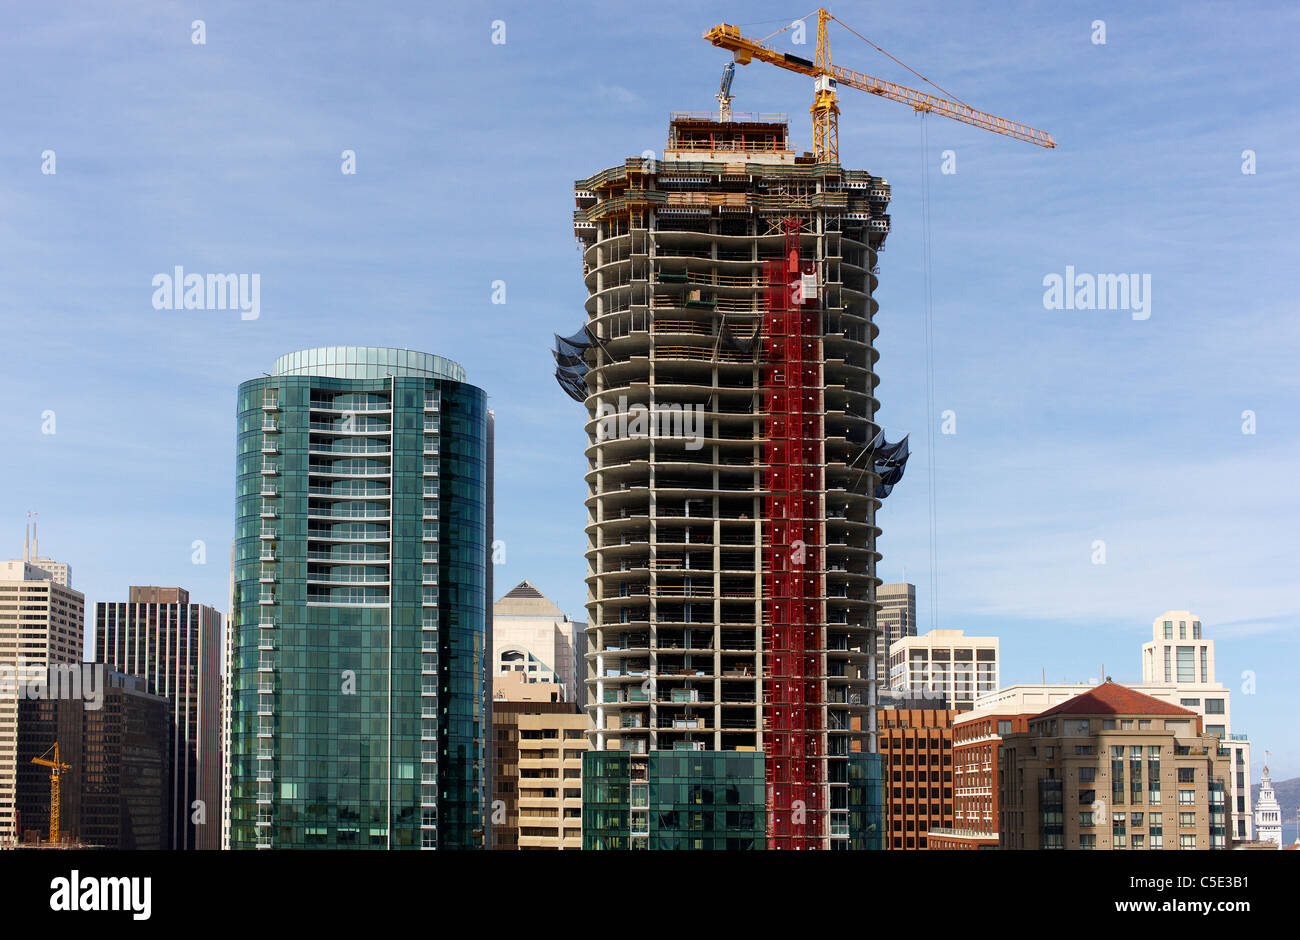 View of new construction of high-rise against blue sky at California, USA - Stock Image